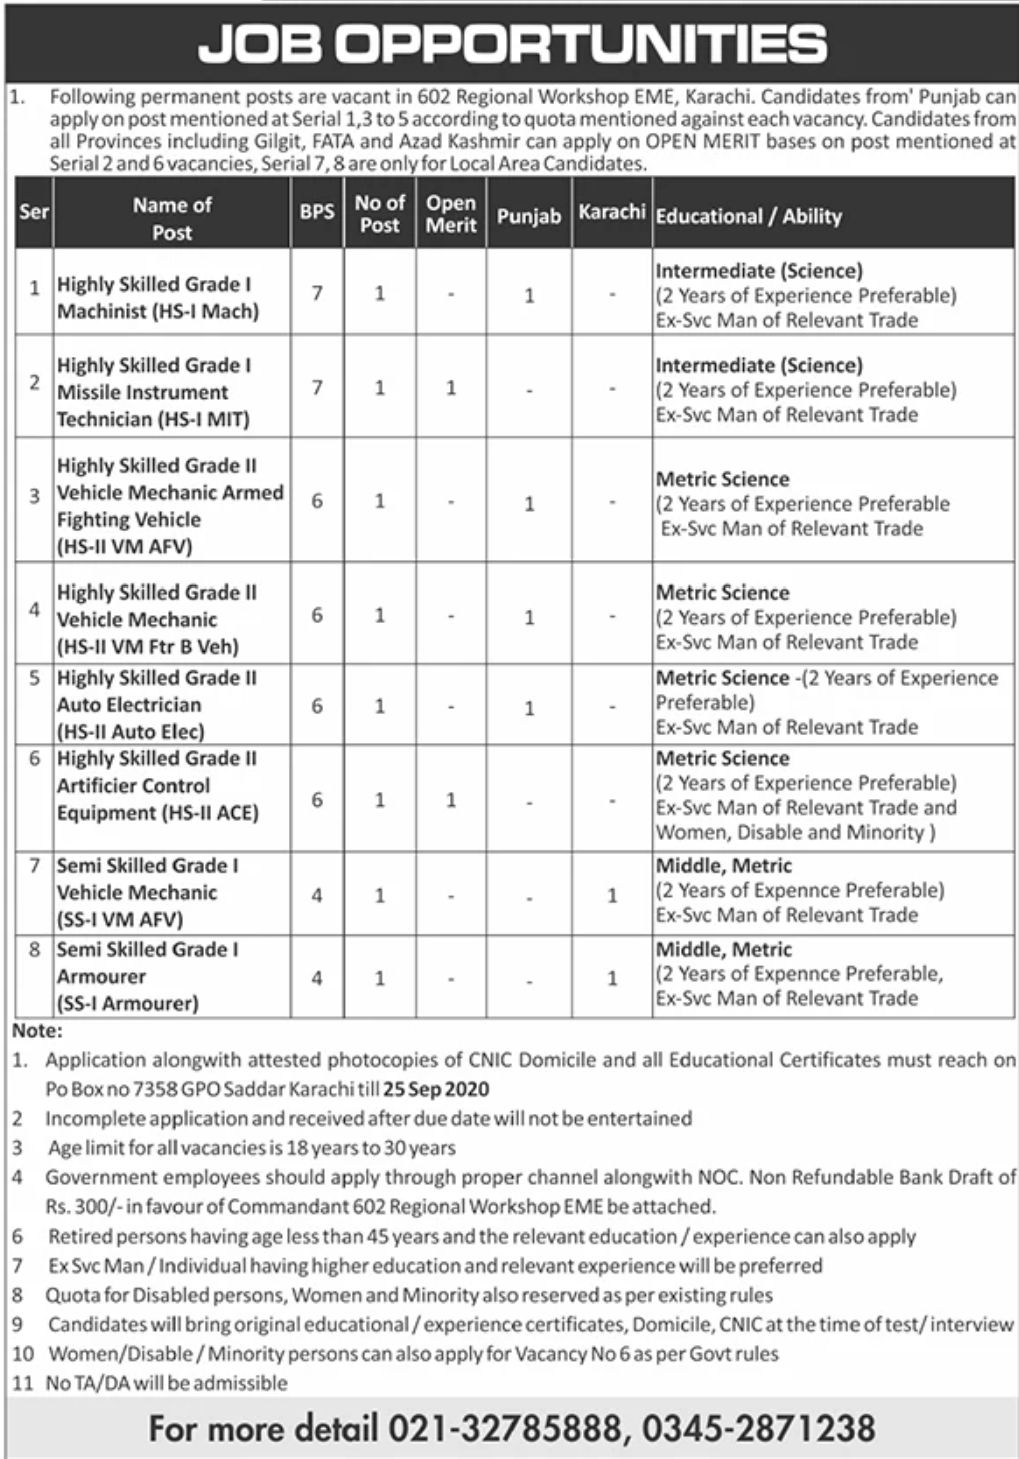 602 Regional Workshop EME Karachi Jobs September 2020